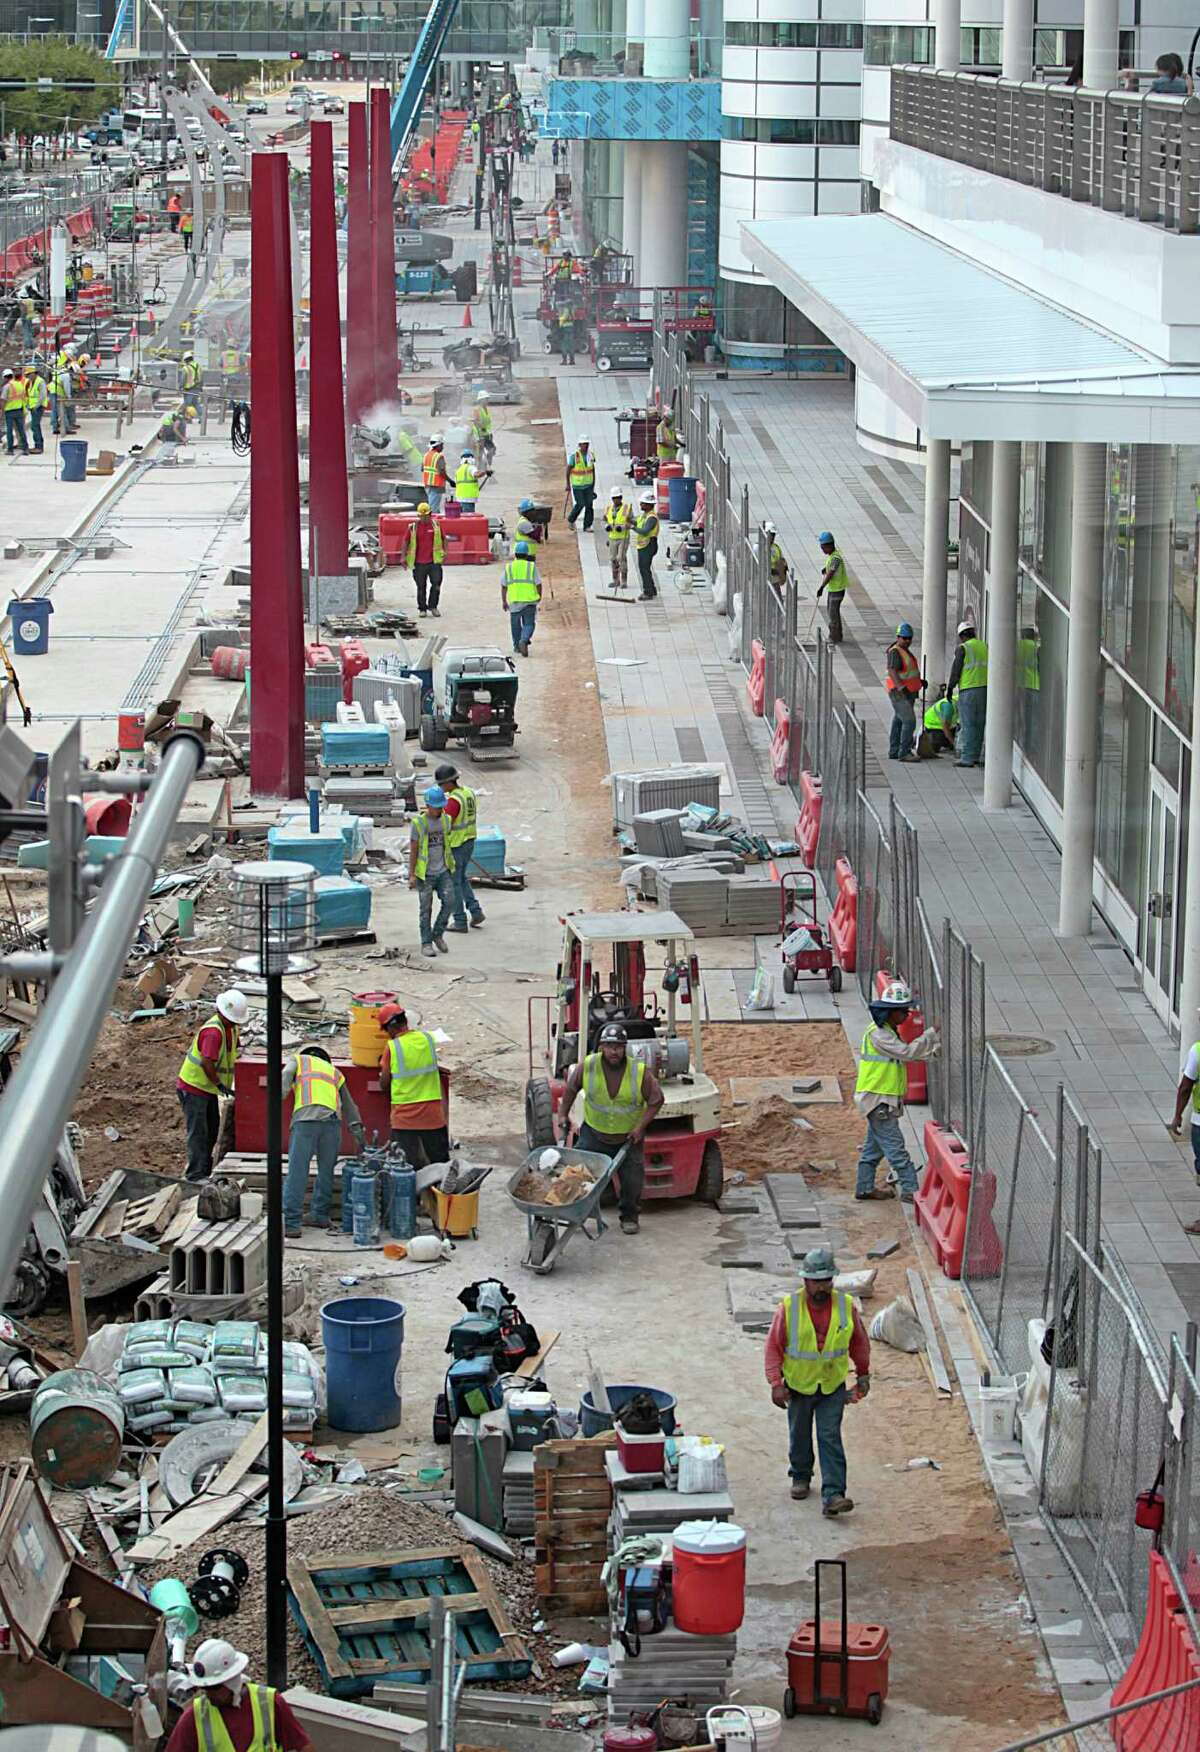 With 100 days before Super Bowl LI, construction crews stayed busy Friday with, among other projects, upgrades to the George R. Brown Convention Center.